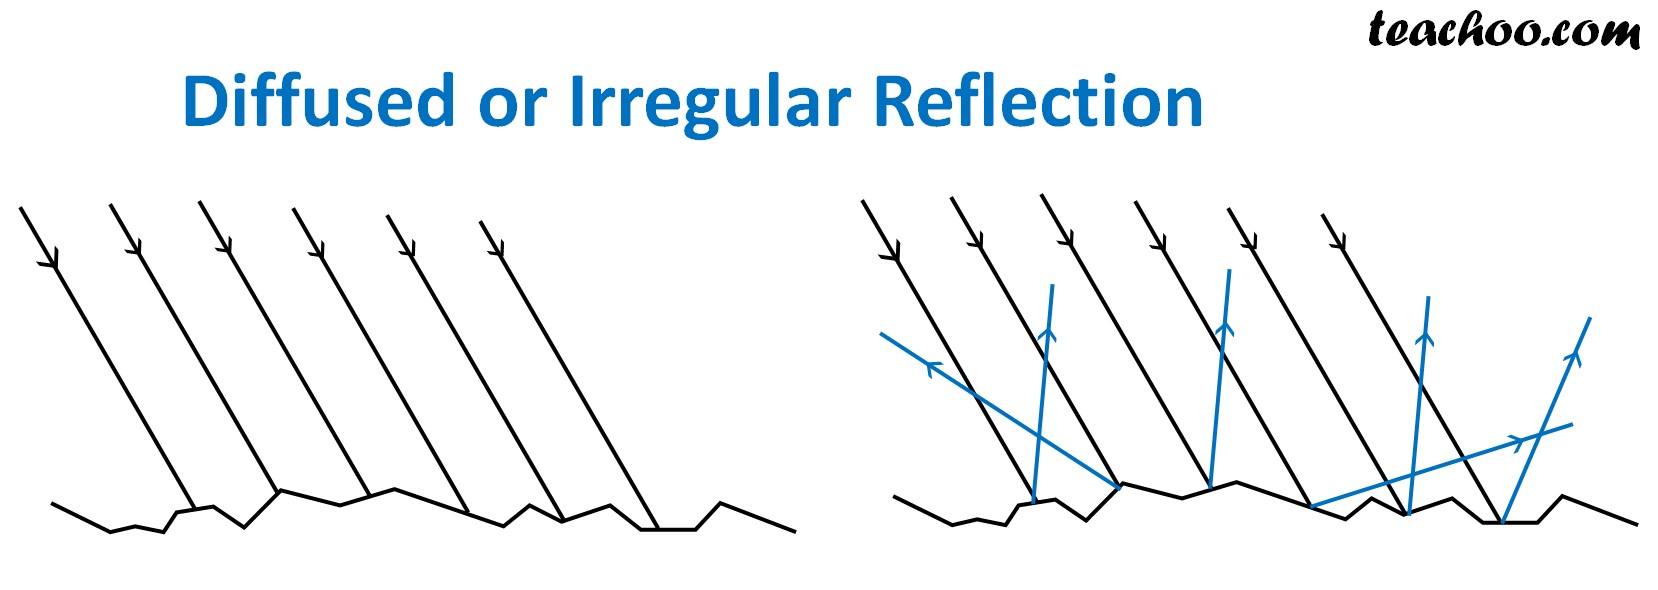 Diffused or Irregular Reflection - Teachoo.jpg